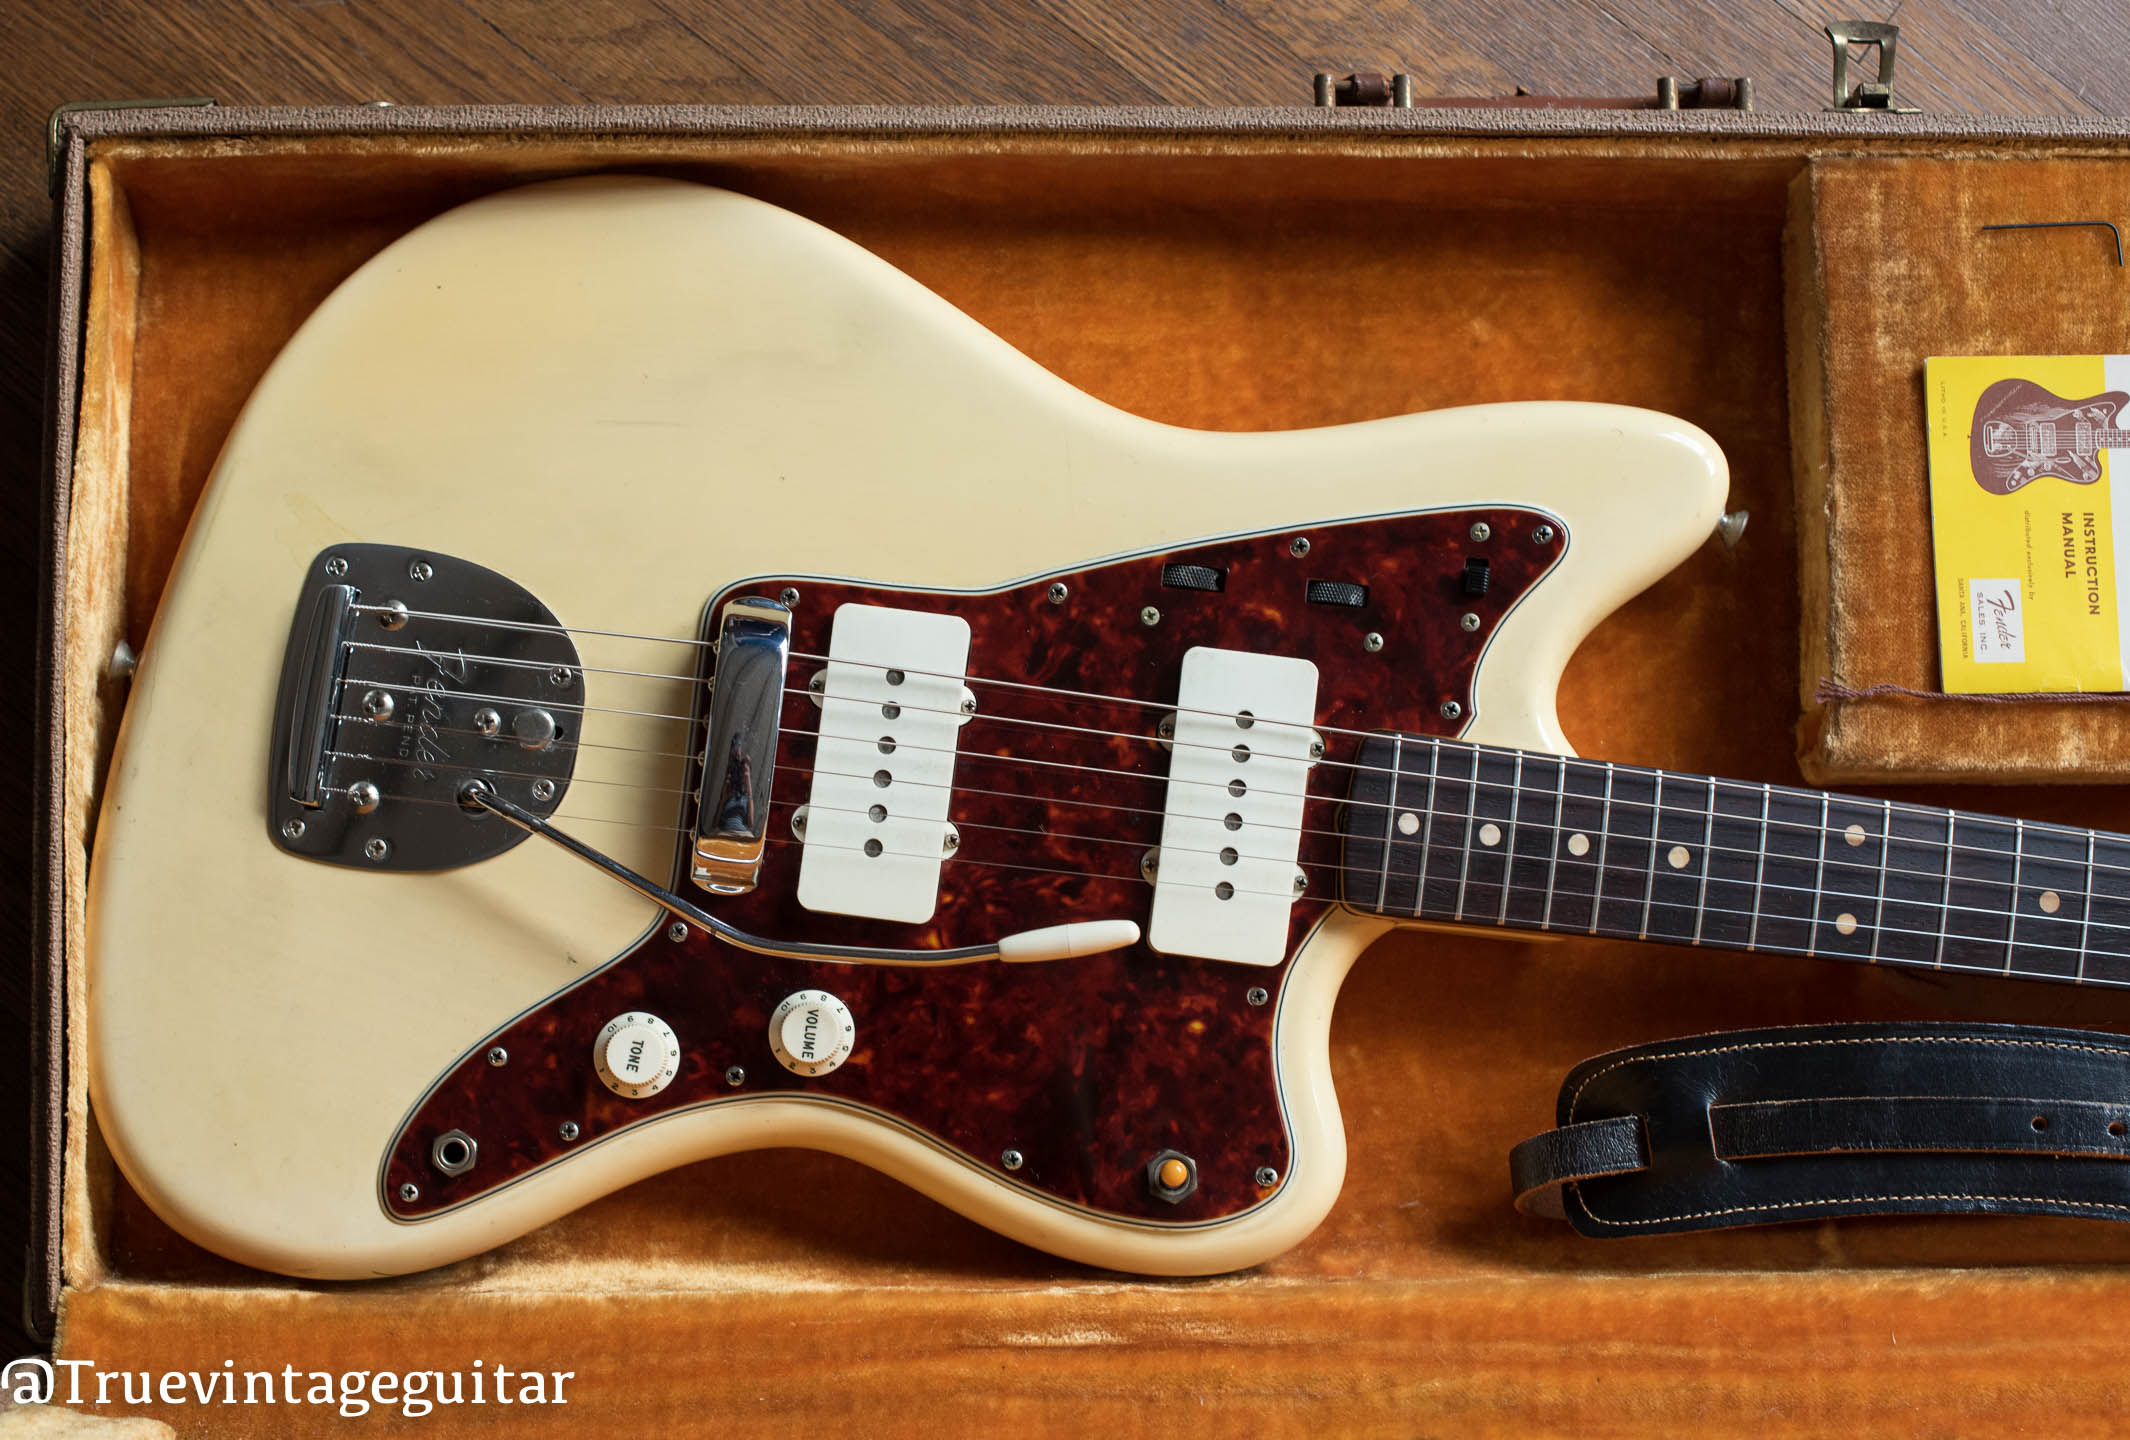 1961 Fender Jazzmaster Guitar, Blond finish over Ash body in original case